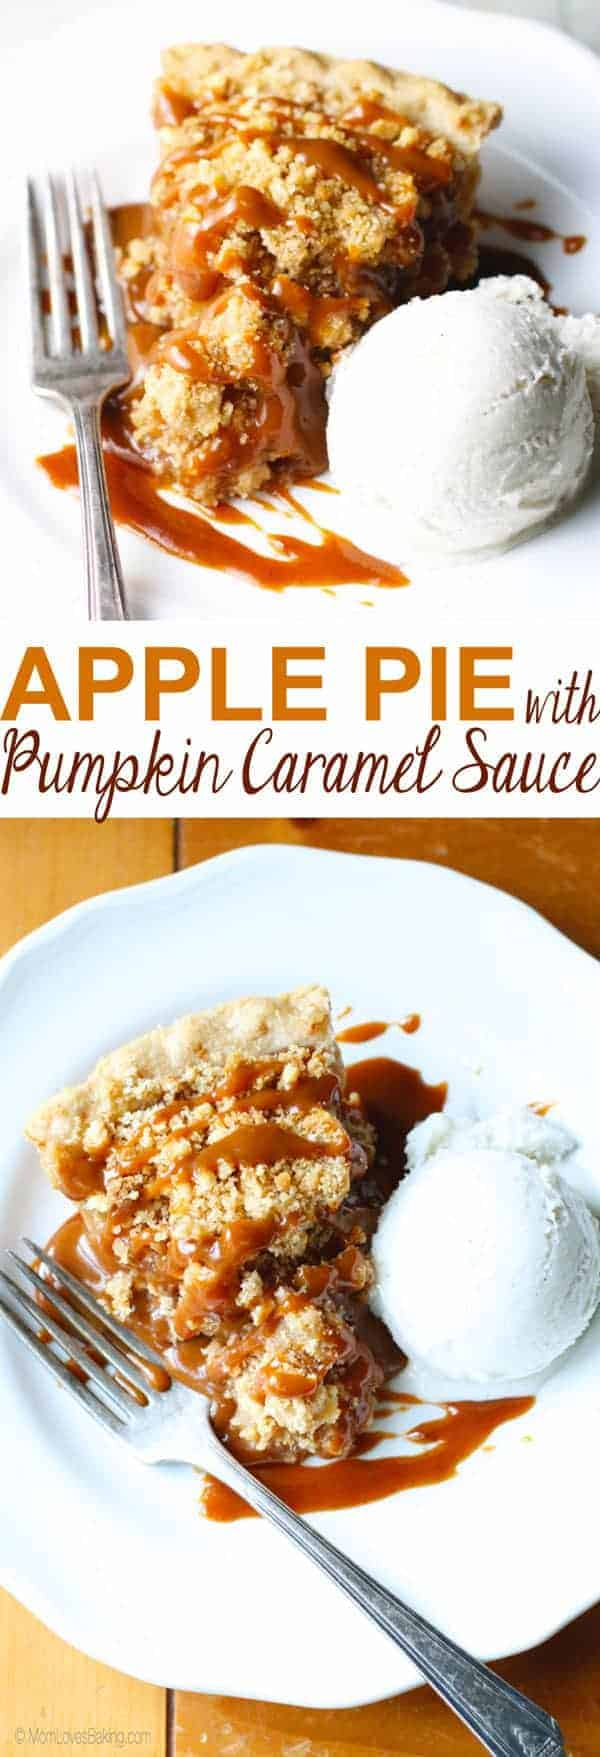 Apple Pie with Caramel Sauce